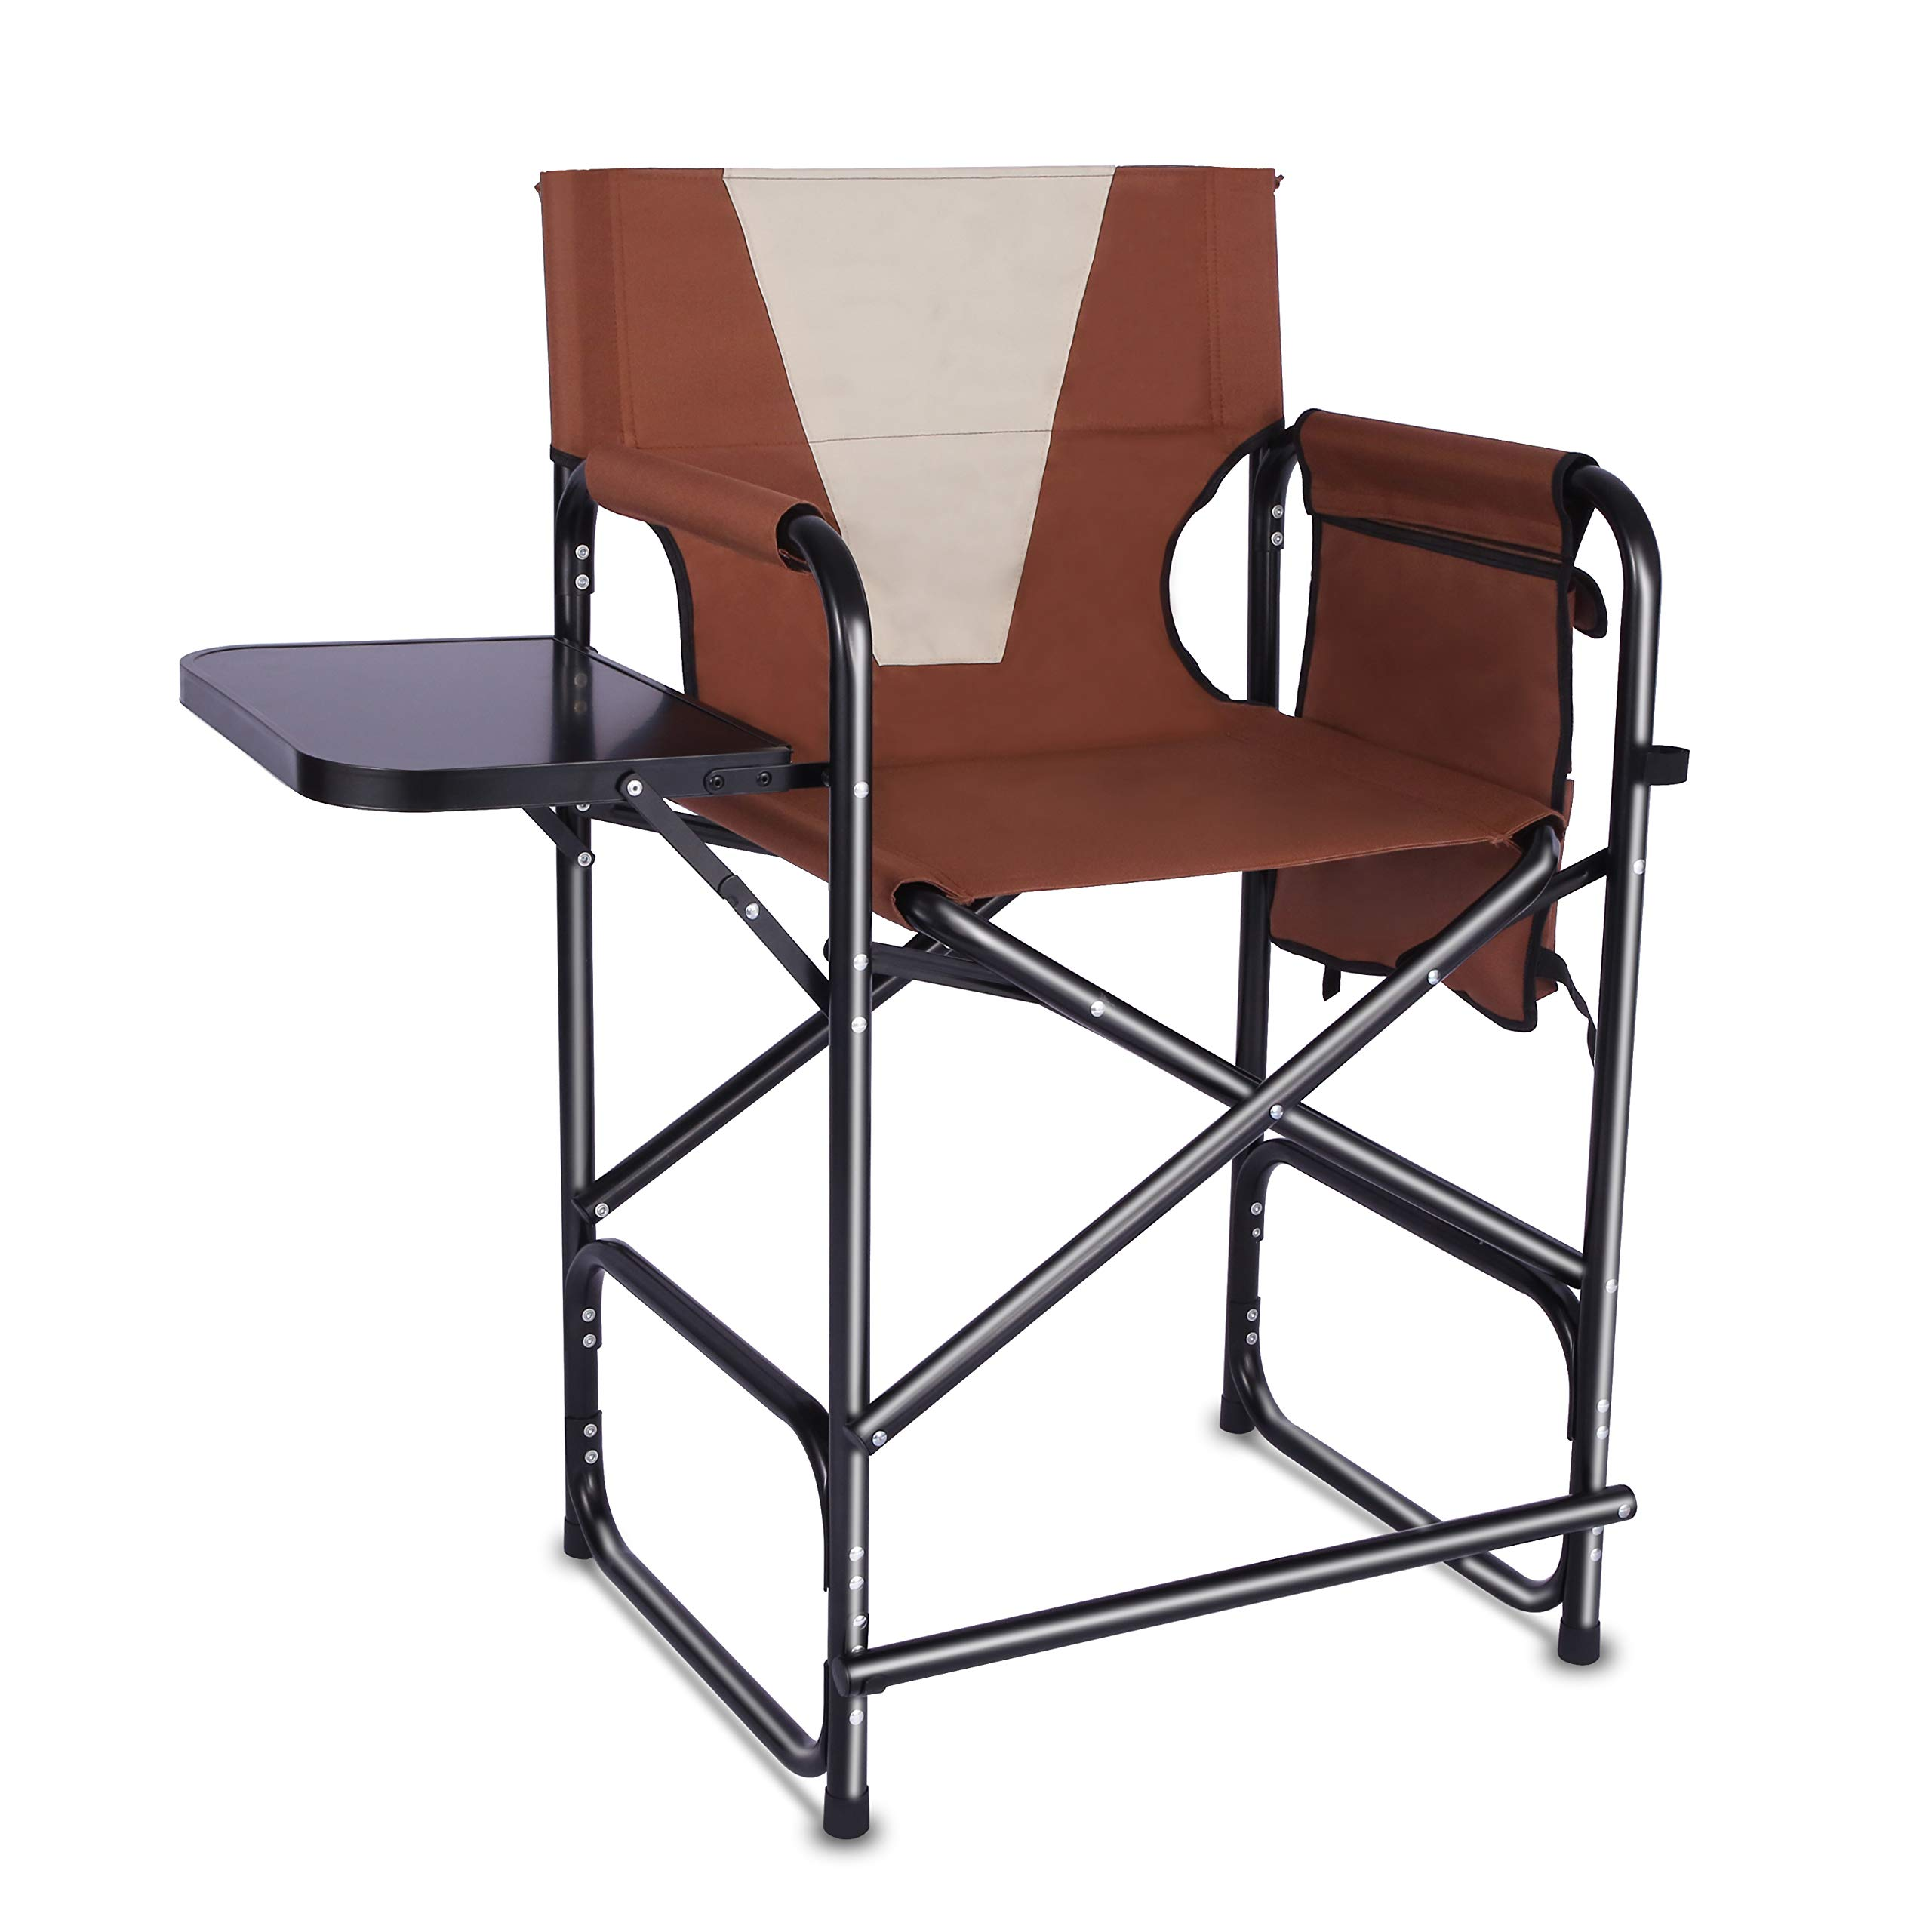 Tall Folding Directors Chair Portable Camping Chair Lightweight Aluminum Frame with Armrest Side Table, Storage Bag, Footrest-Supports 300lbs, 24'' Seat Height by Shaddock Fishing